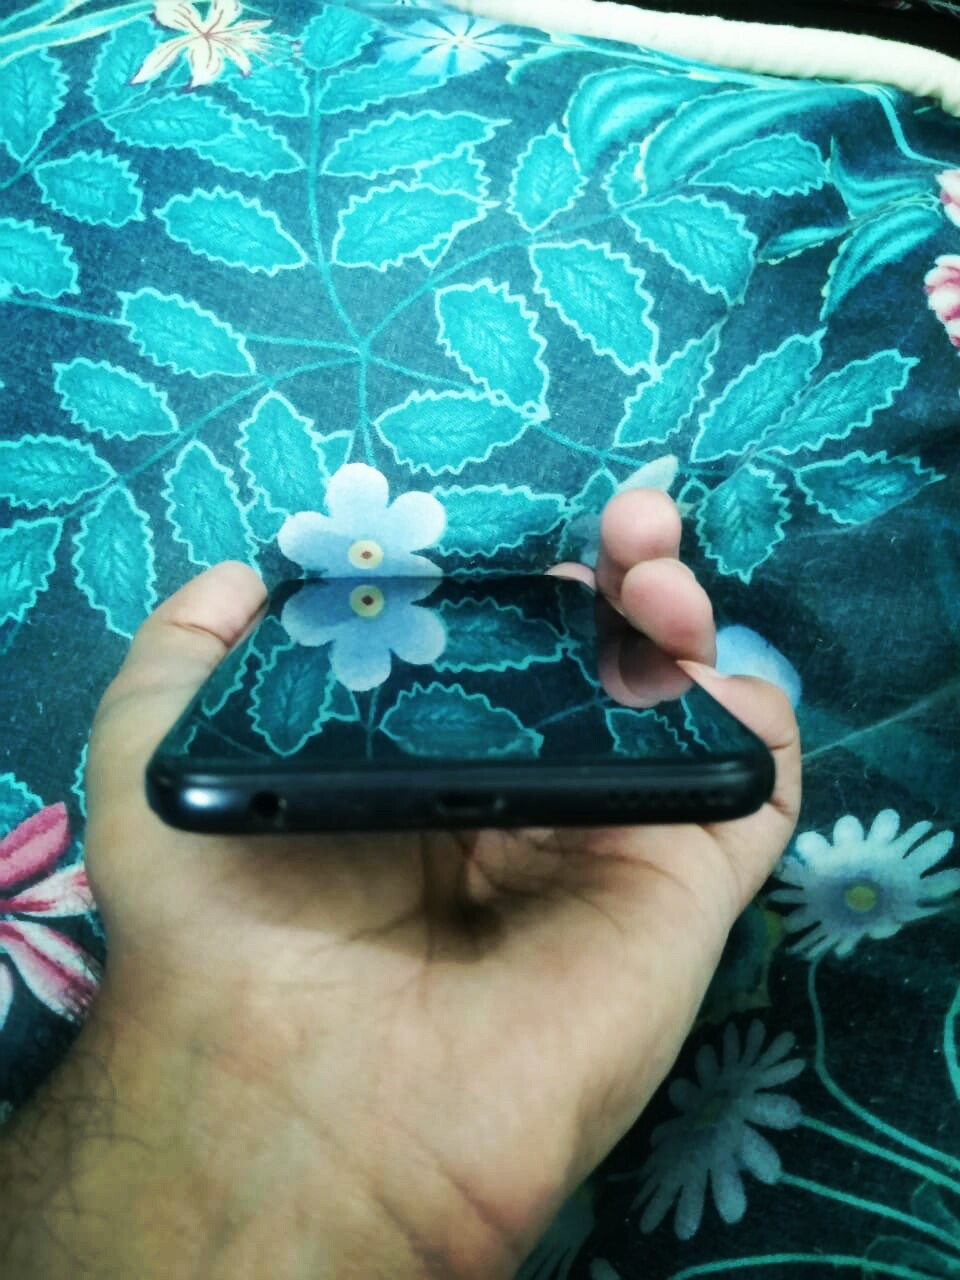 Oppo A57 lush condition